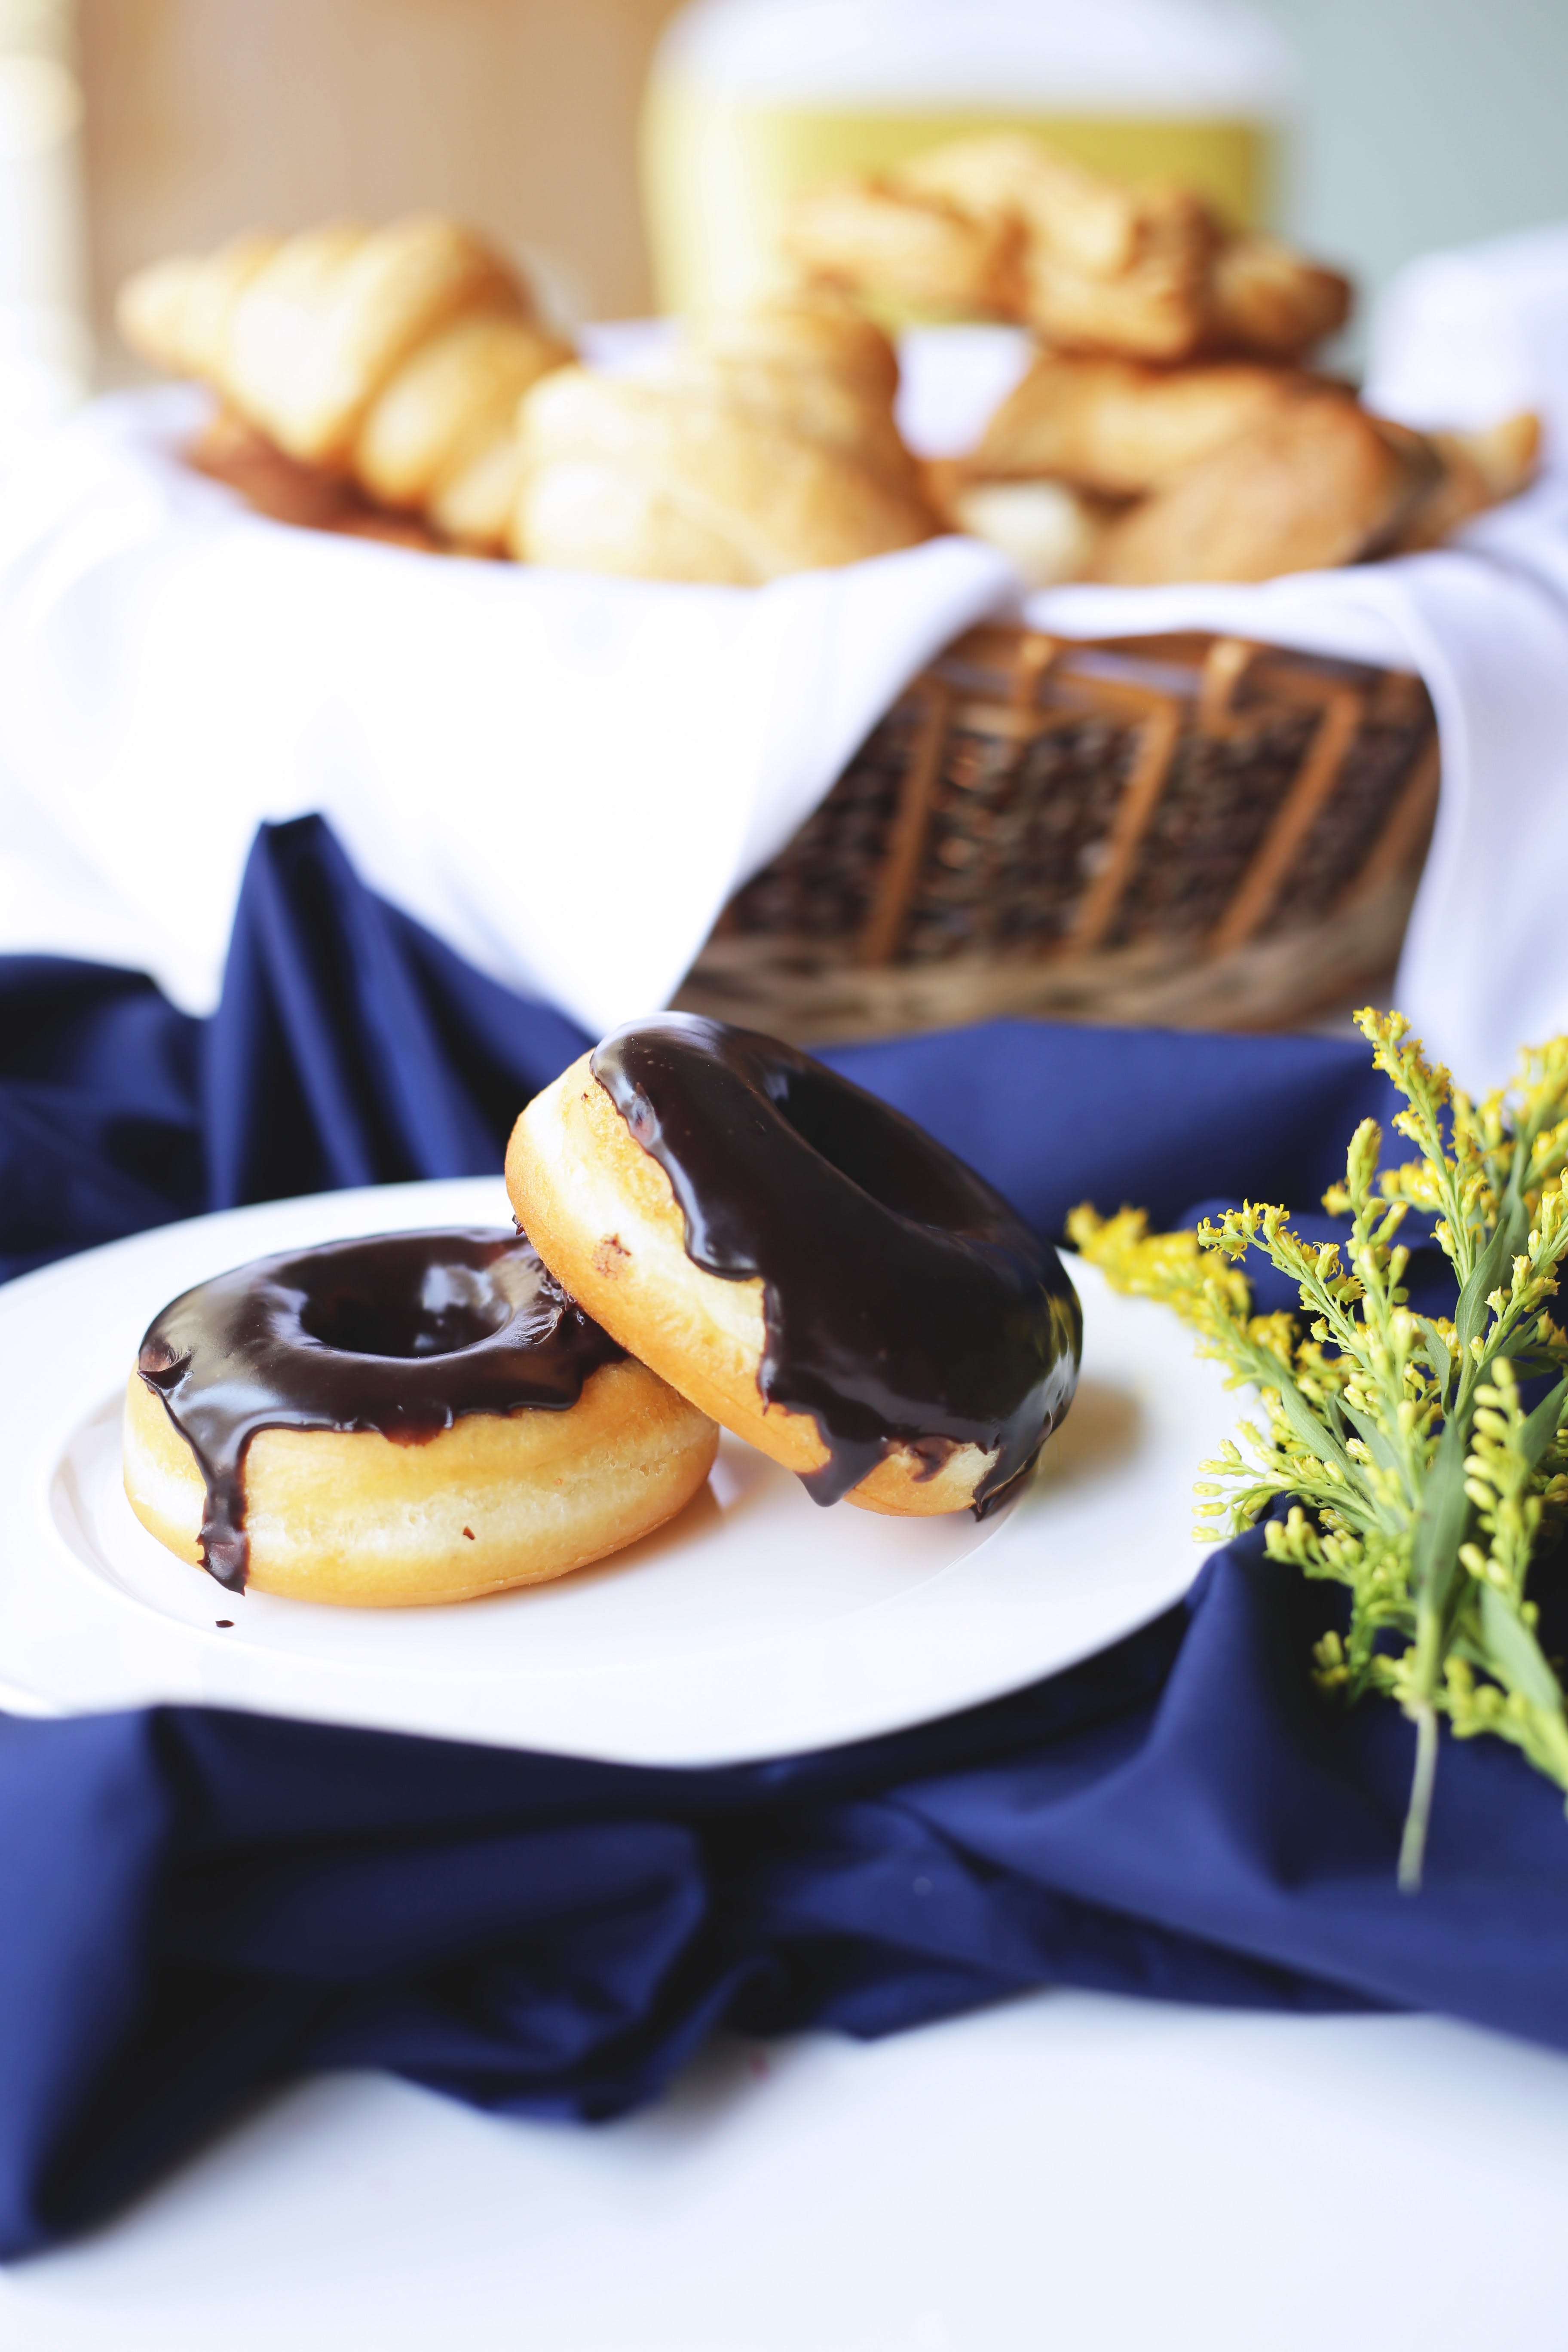 Selective Focus Photography Of Doughnuts On Plate